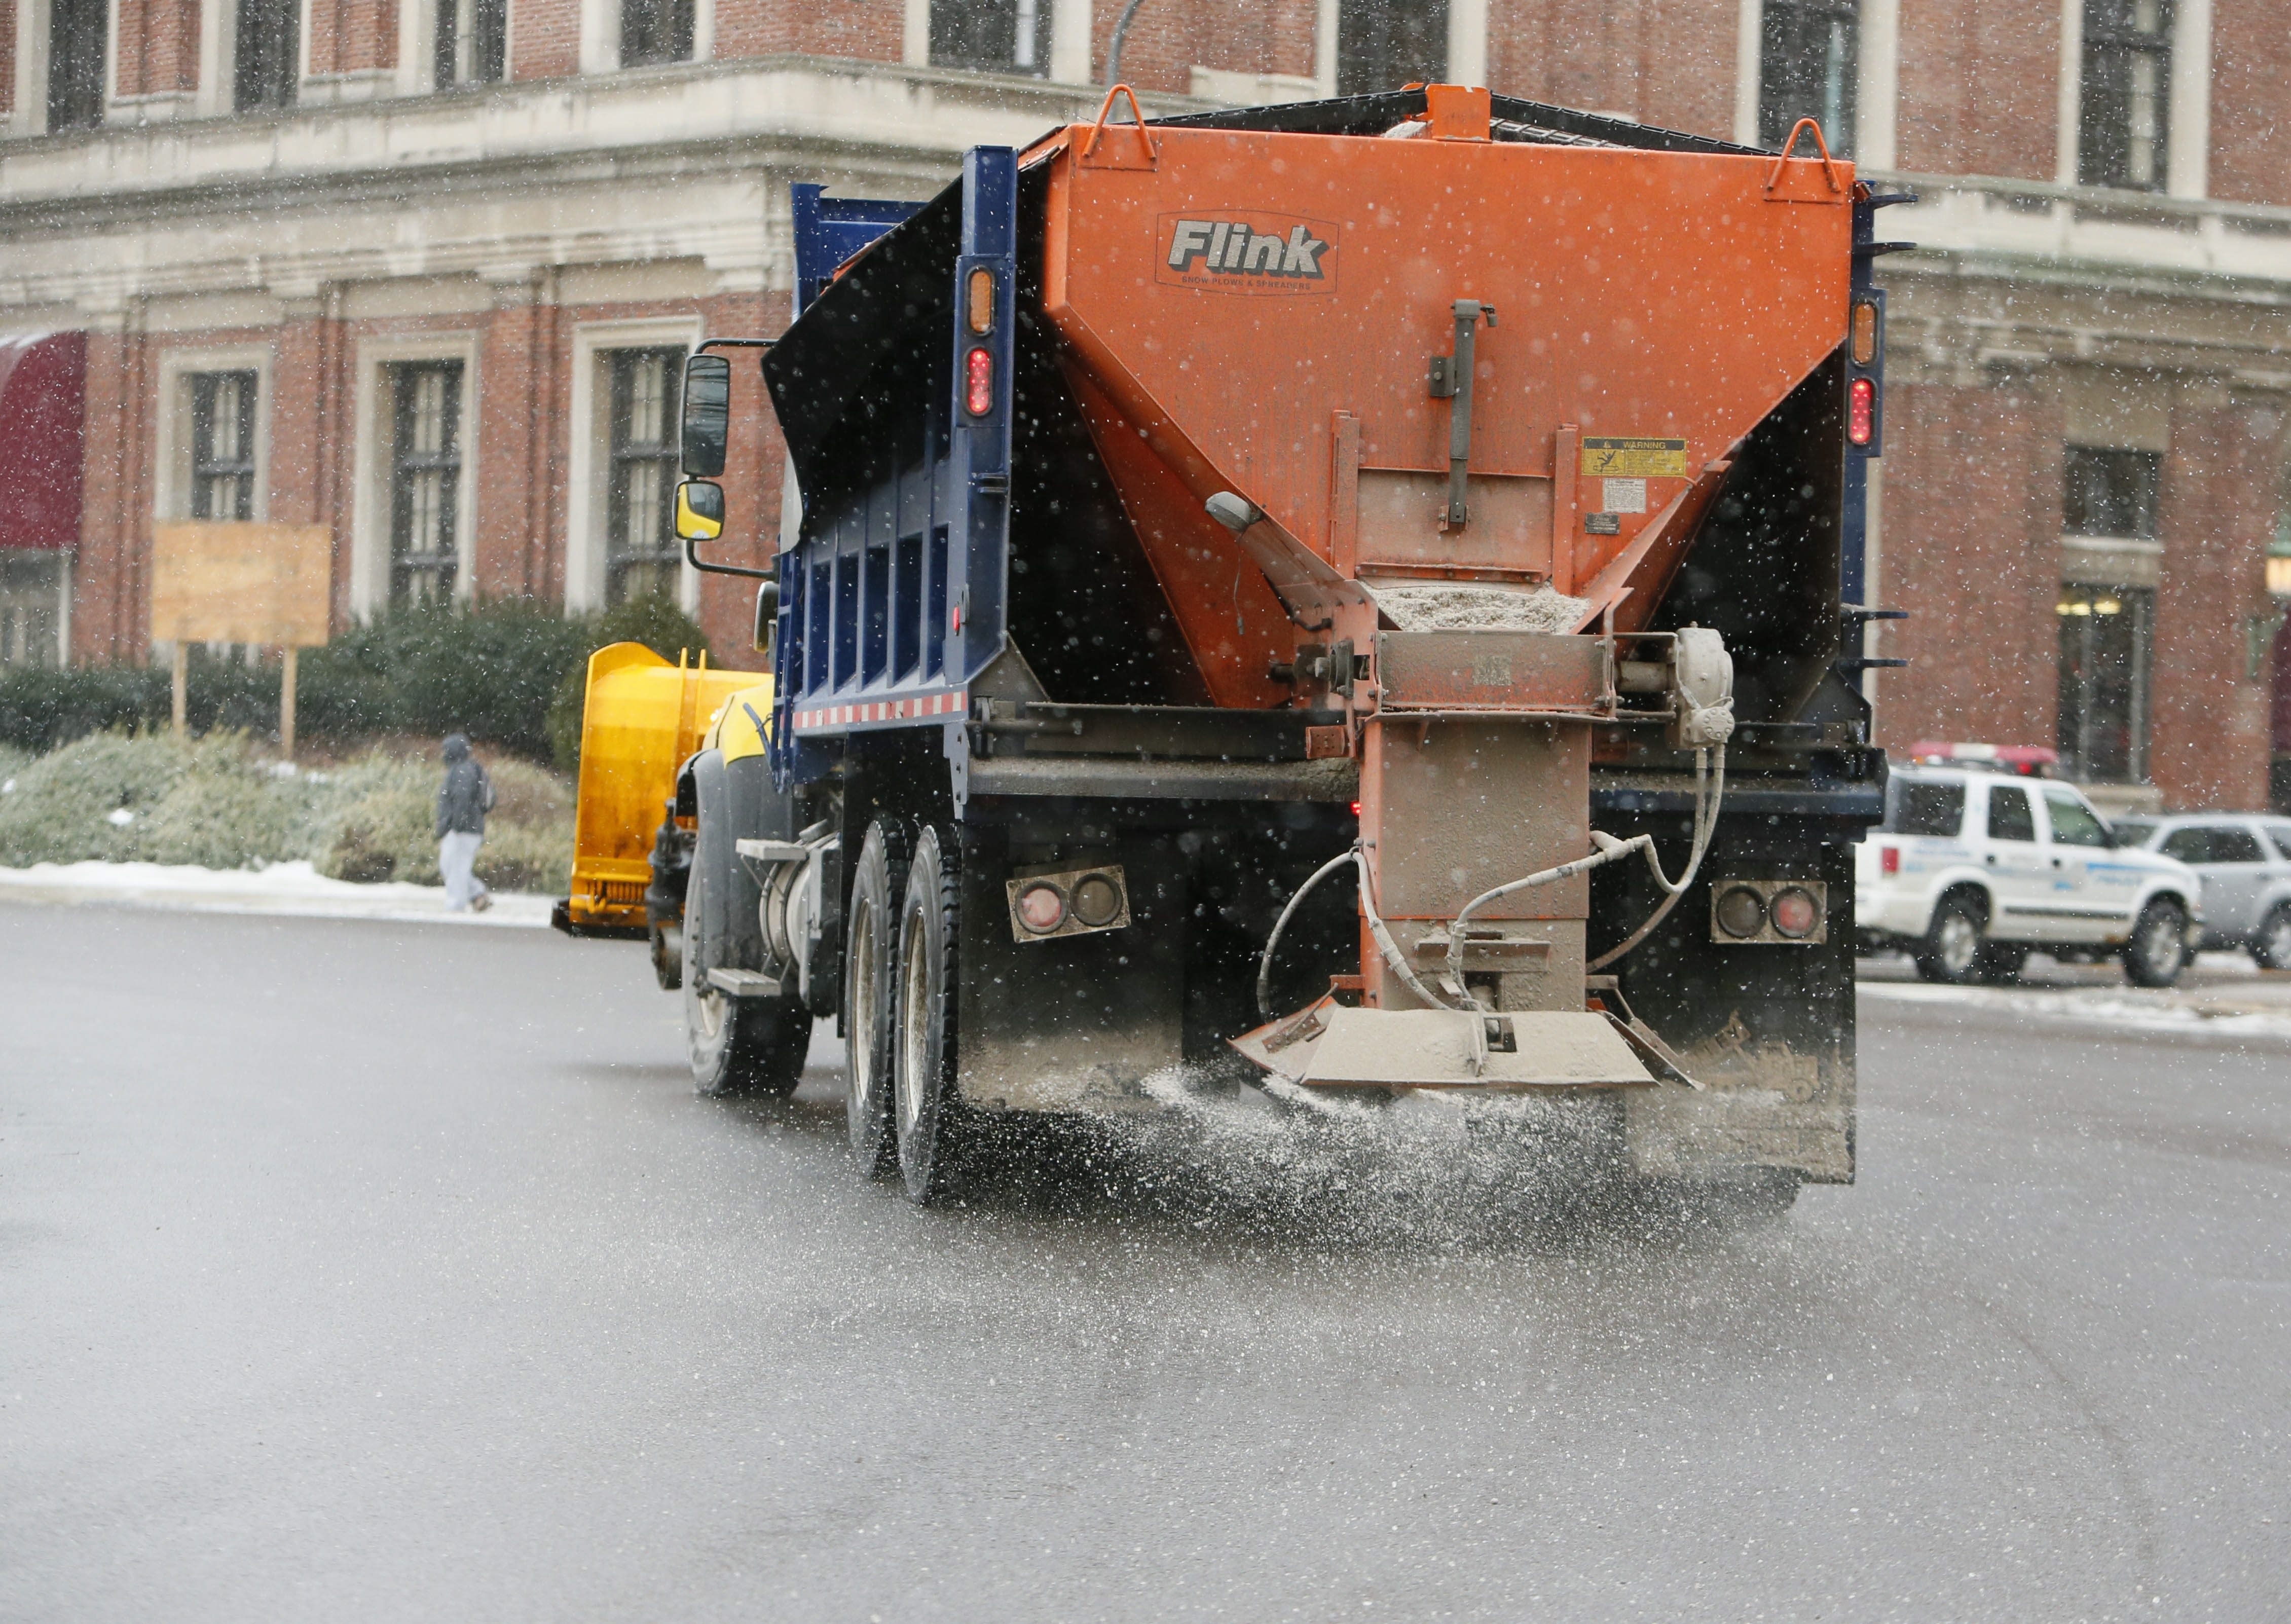 A City of Buffalo plow disperses salt on the road in Niagara Square in preparation for the impending storm today. Some areas could get as much as 2 to 3 feet of snow by Wednesday morning.